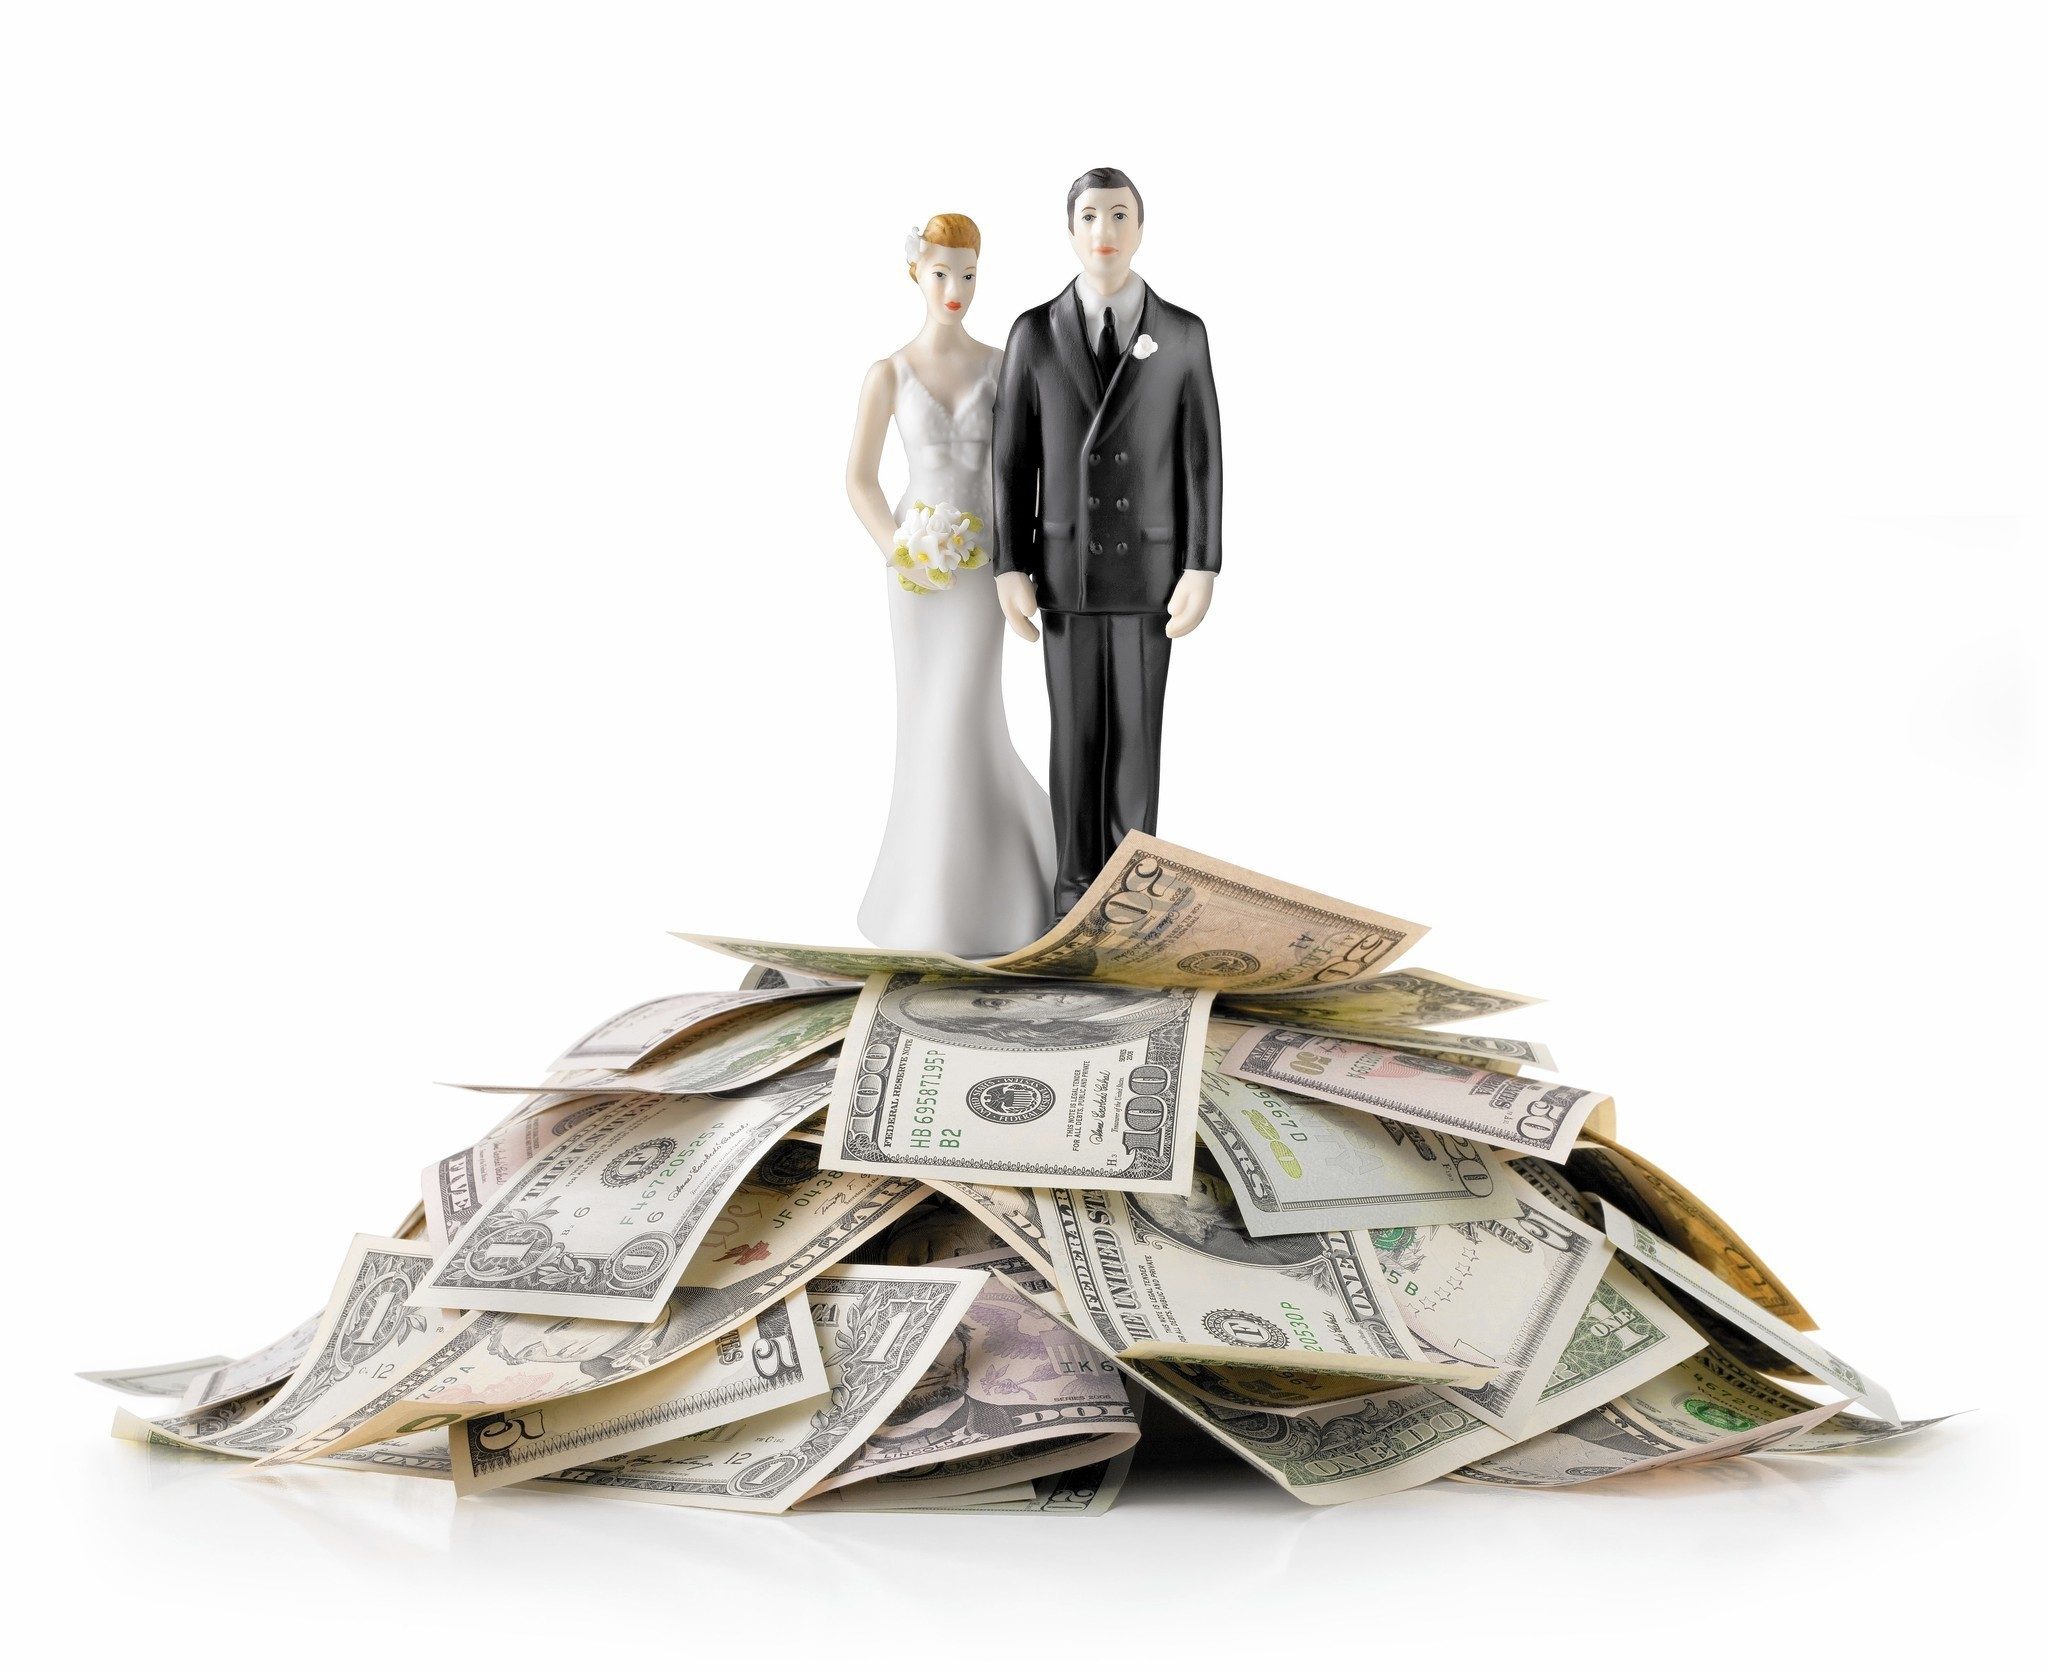 How Much For Wedding Gift Money: 6 Hidden Wedding Expenses To Look Out For